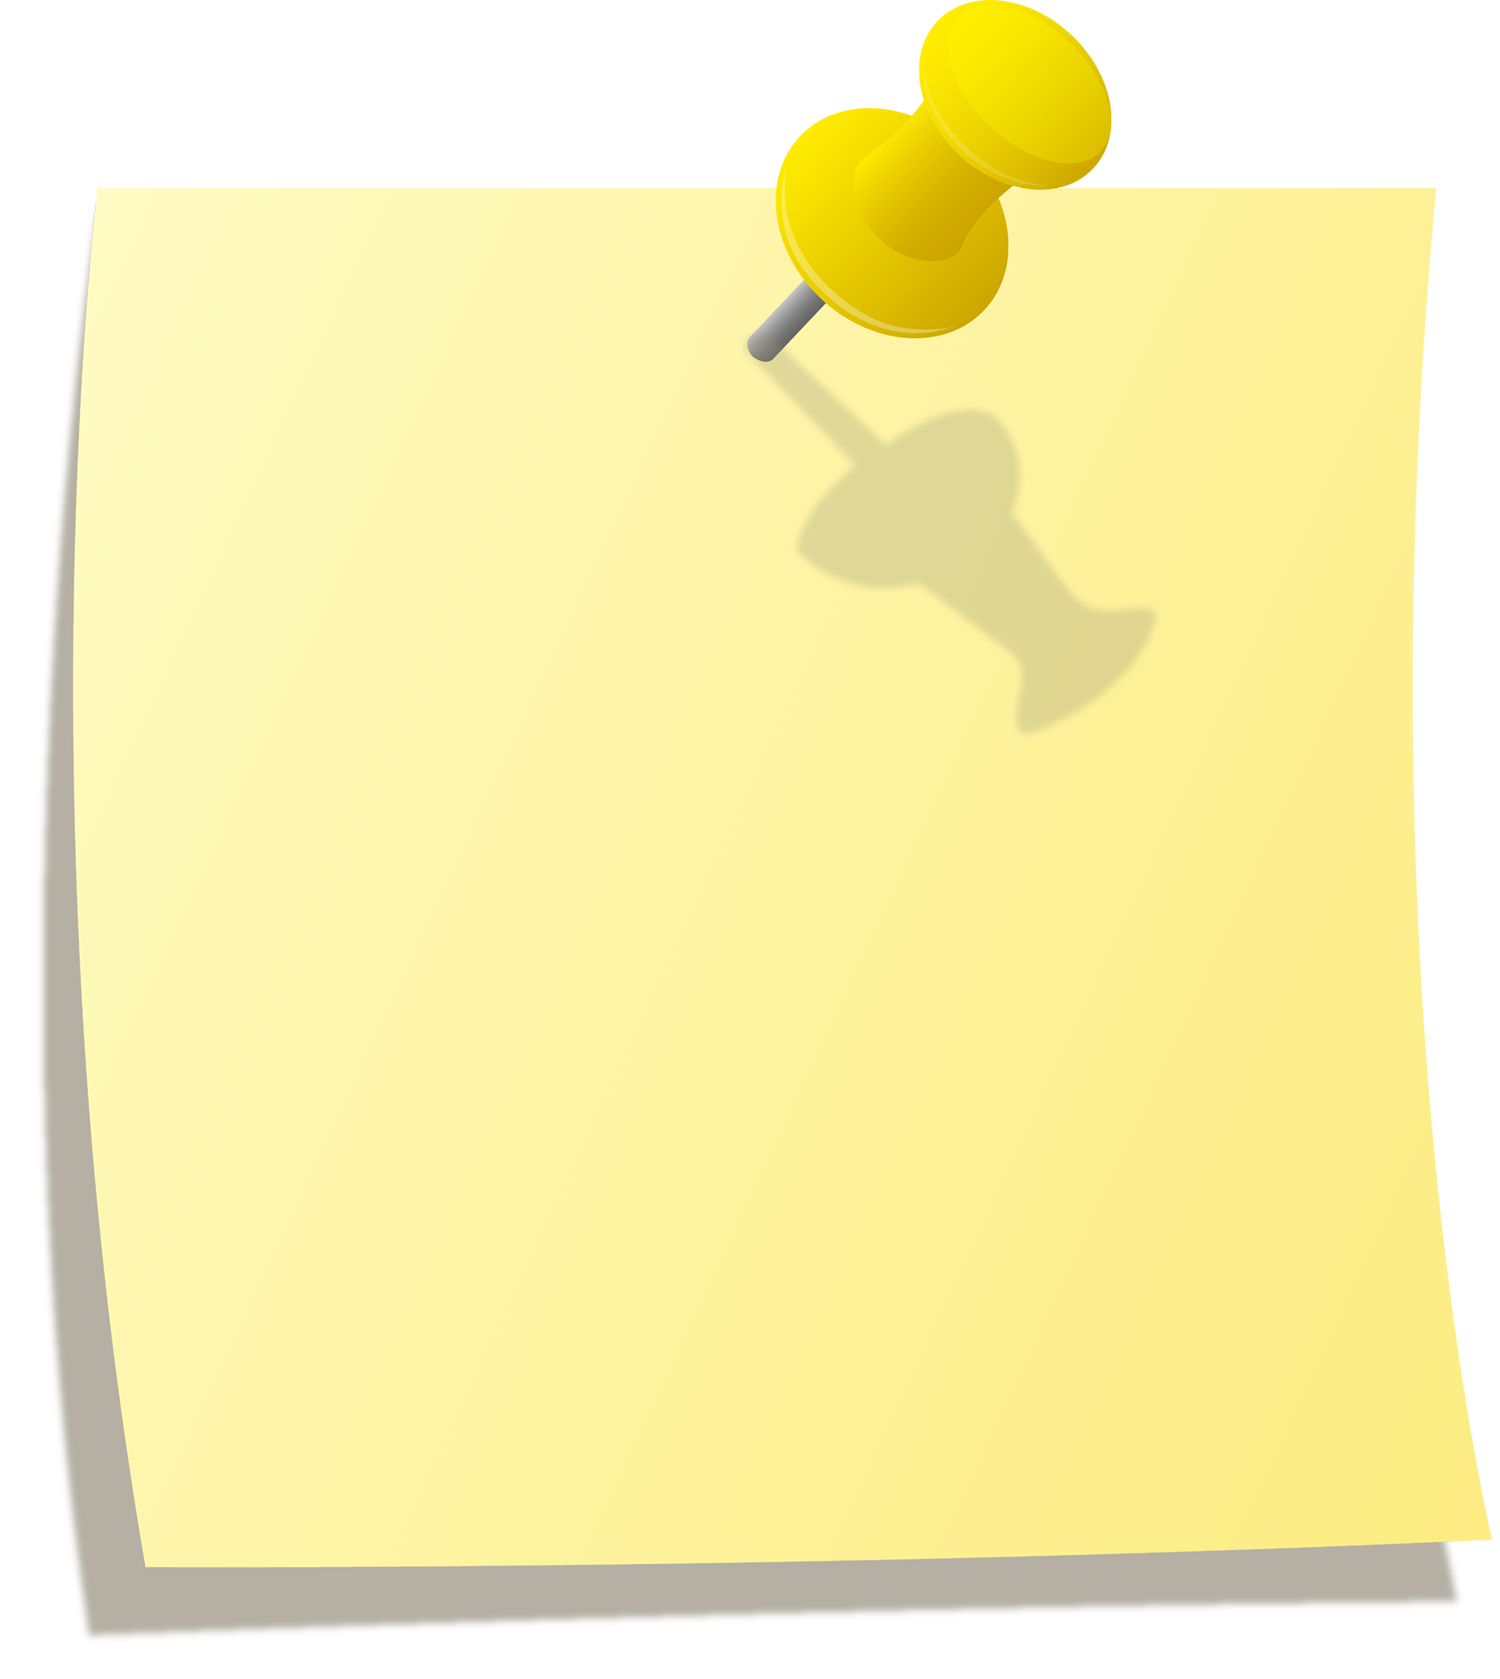 Stick it note png. Paper blank clipart yellow